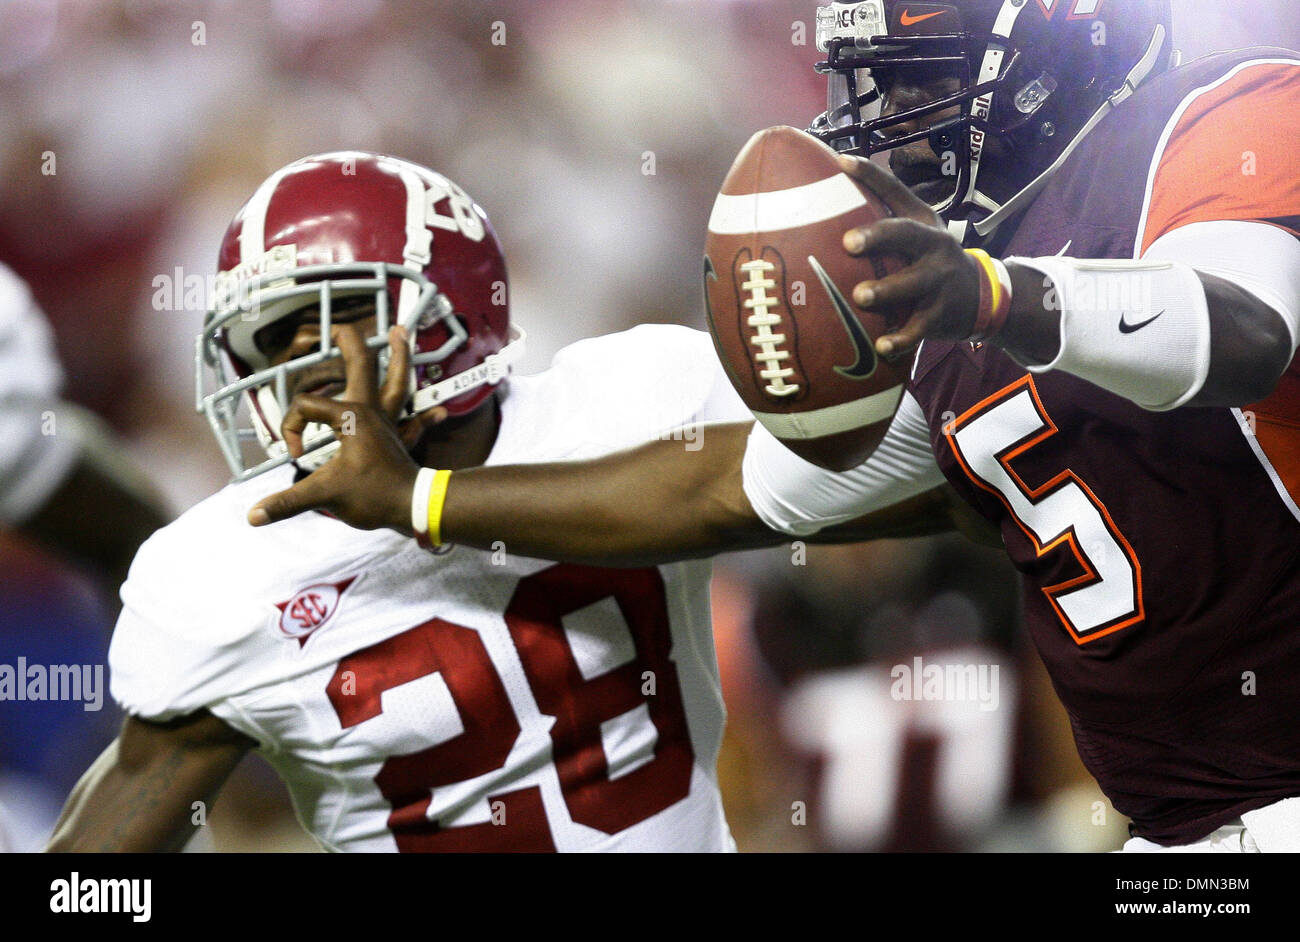 Sep 05, 2009 - Atlanta, Georgia, USA - NCAA Football - Virginia Tech's TYROD TAYLOR (5) stiff arms Alabama's JAVIER ARENAS (28) during the first half of the schools' season opener in the Georgia Dome. (Credit Image: © Josh D. Weiss/ZUMA Press) - Stock Image